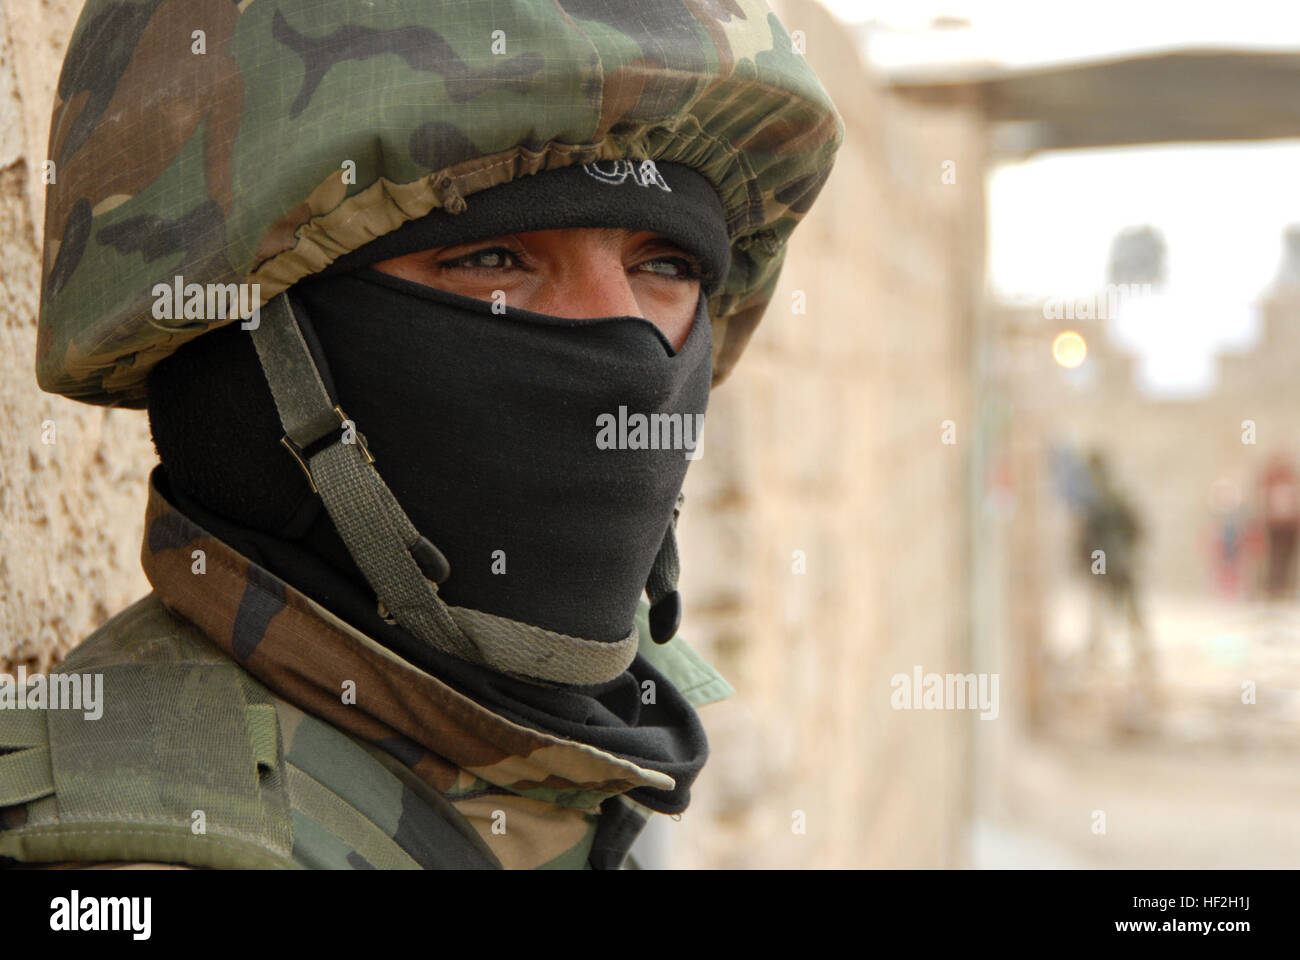 An Iraqi army soldier with the Emergency Unit secures the area while stopped during a joint neighborhood patrol - Stock Image